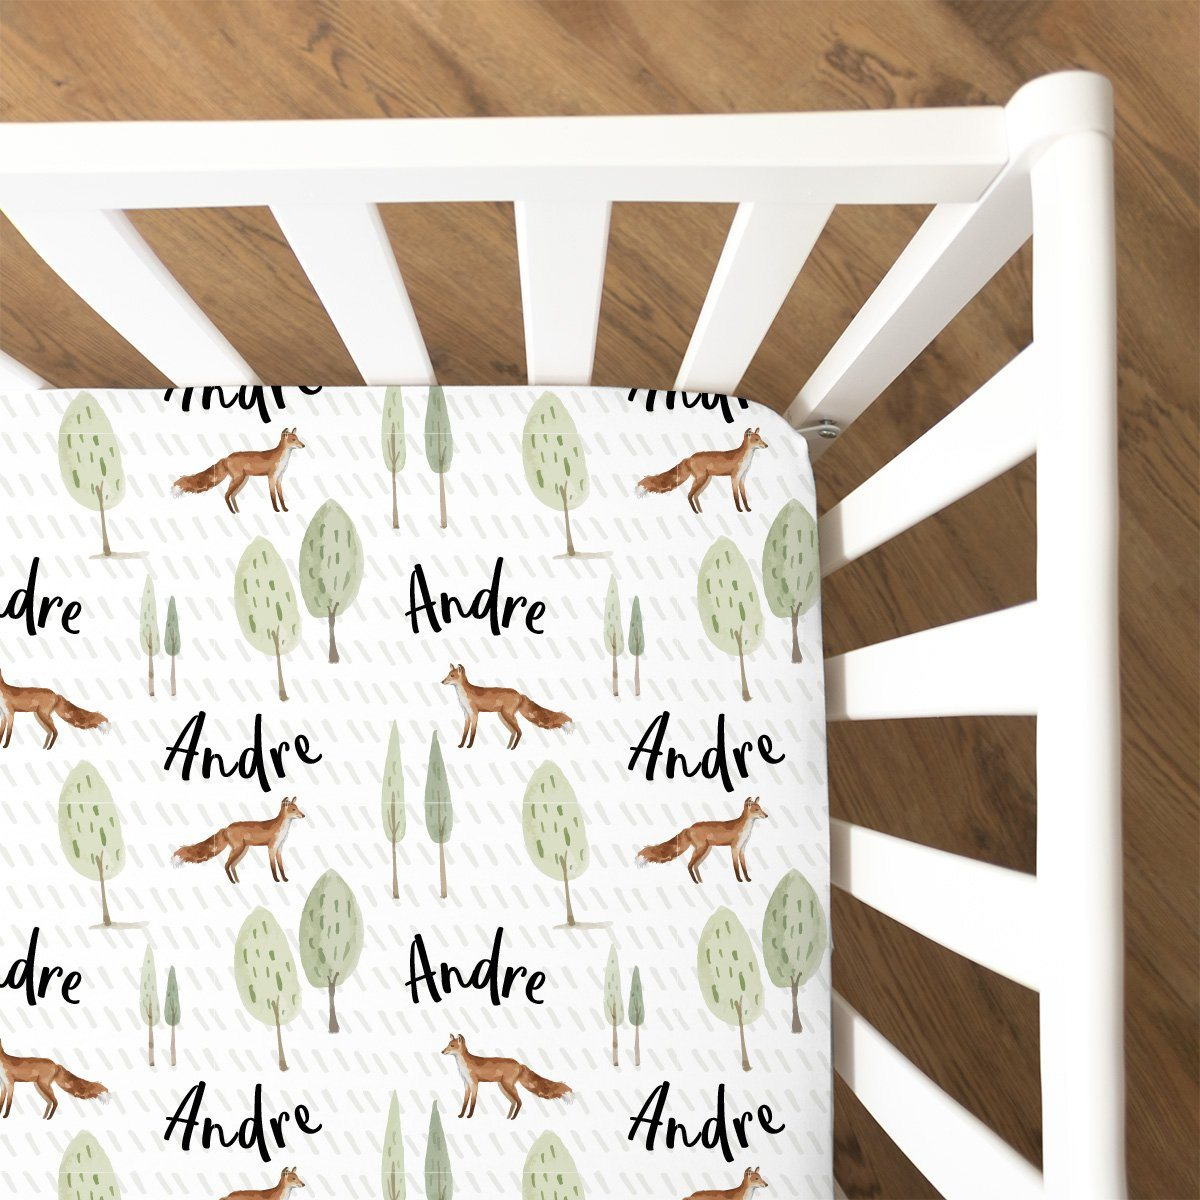 Brene's Walk Through the Woods | Fitted Crib Sheet